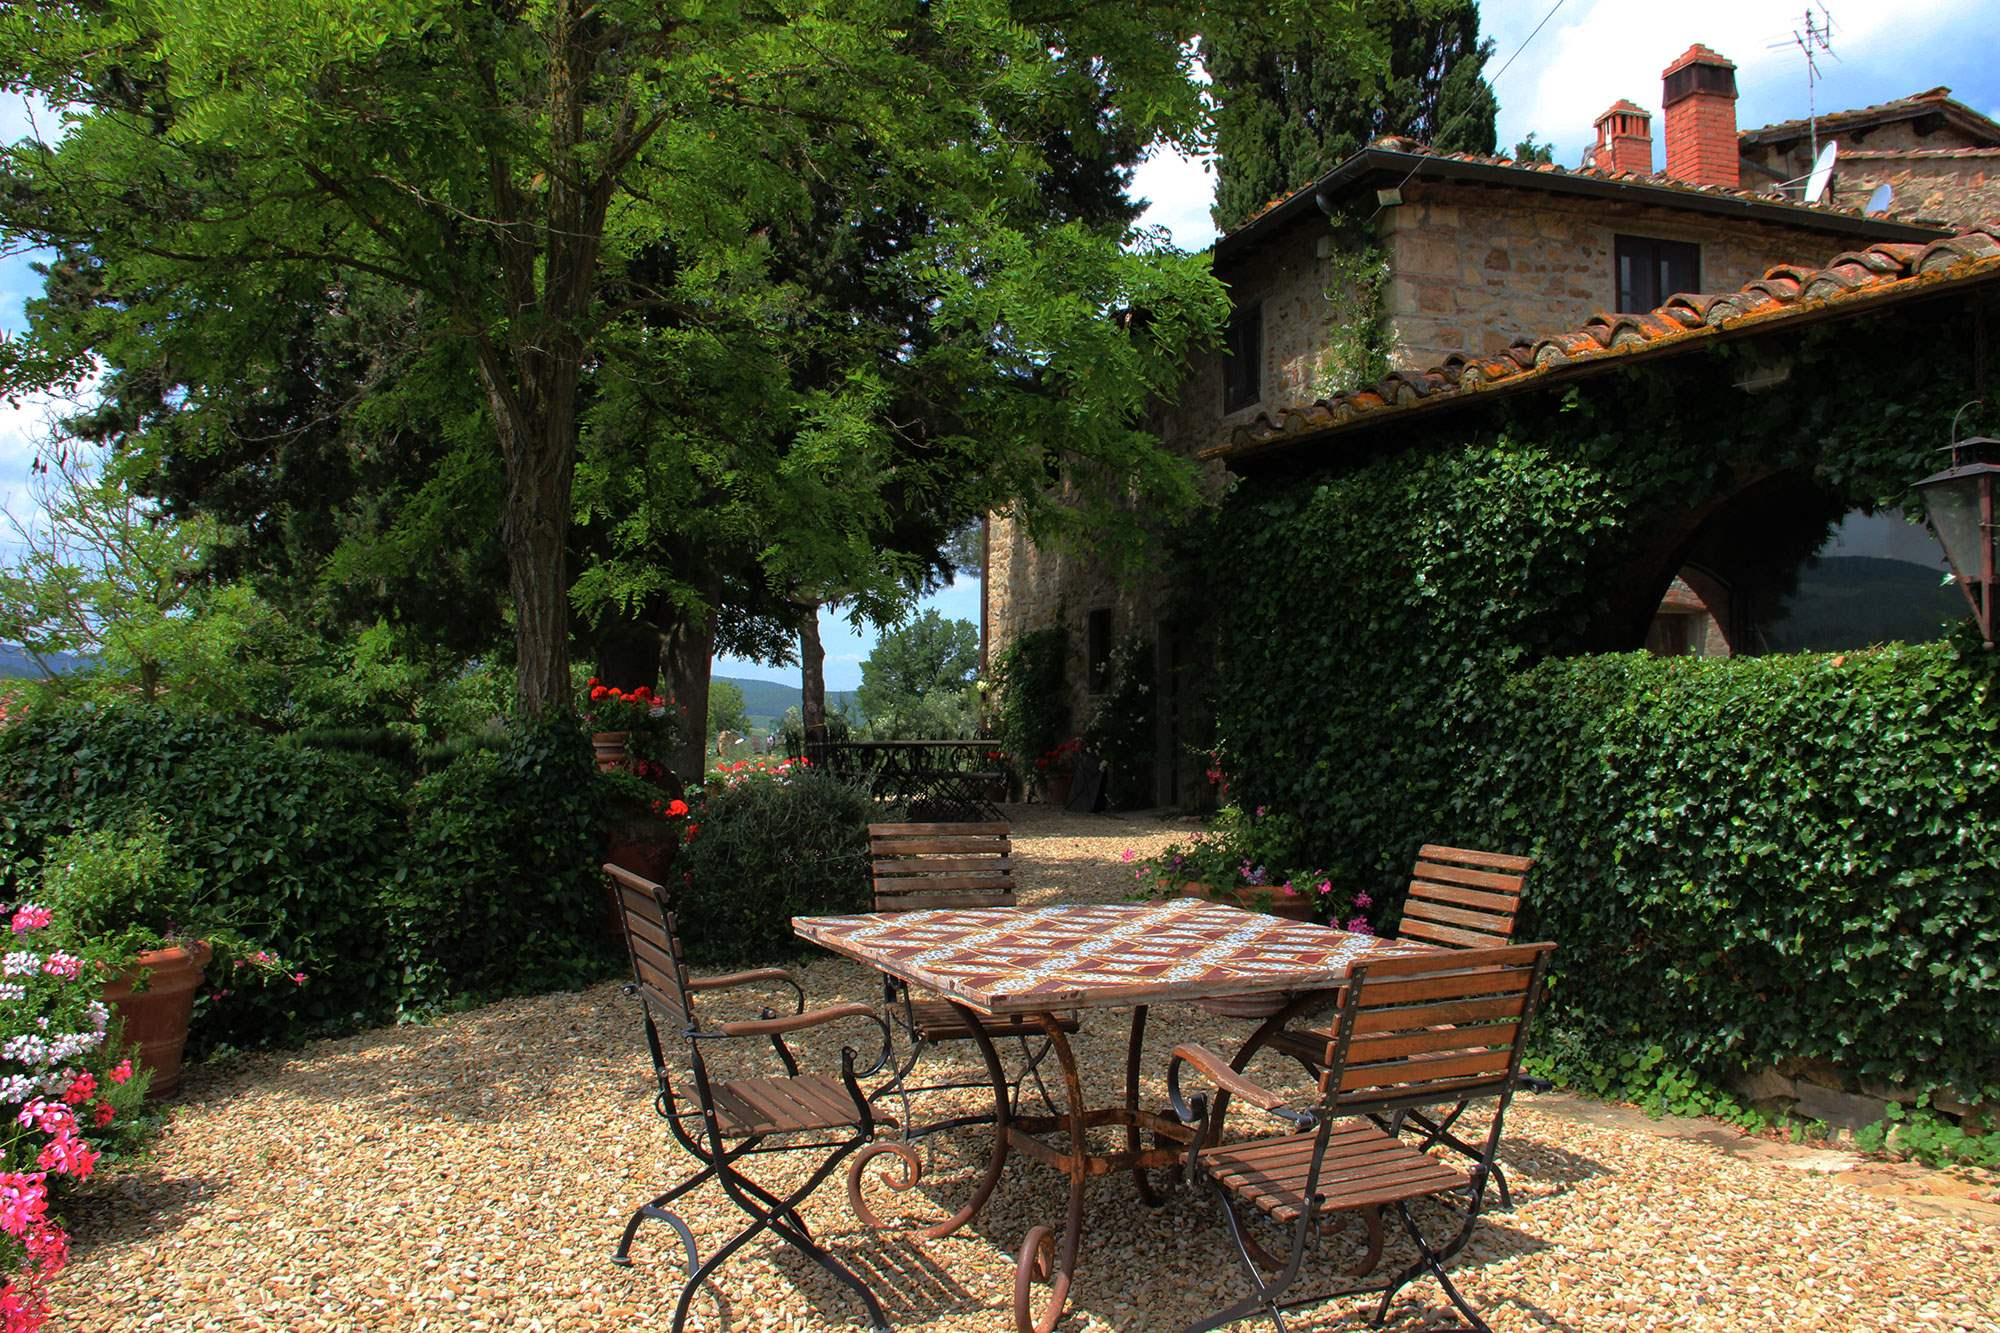 Villa Giacinto, 6 Bedroom rate, 6 bedroom villa in Chianti & Countryside, Tuscany Photo #8